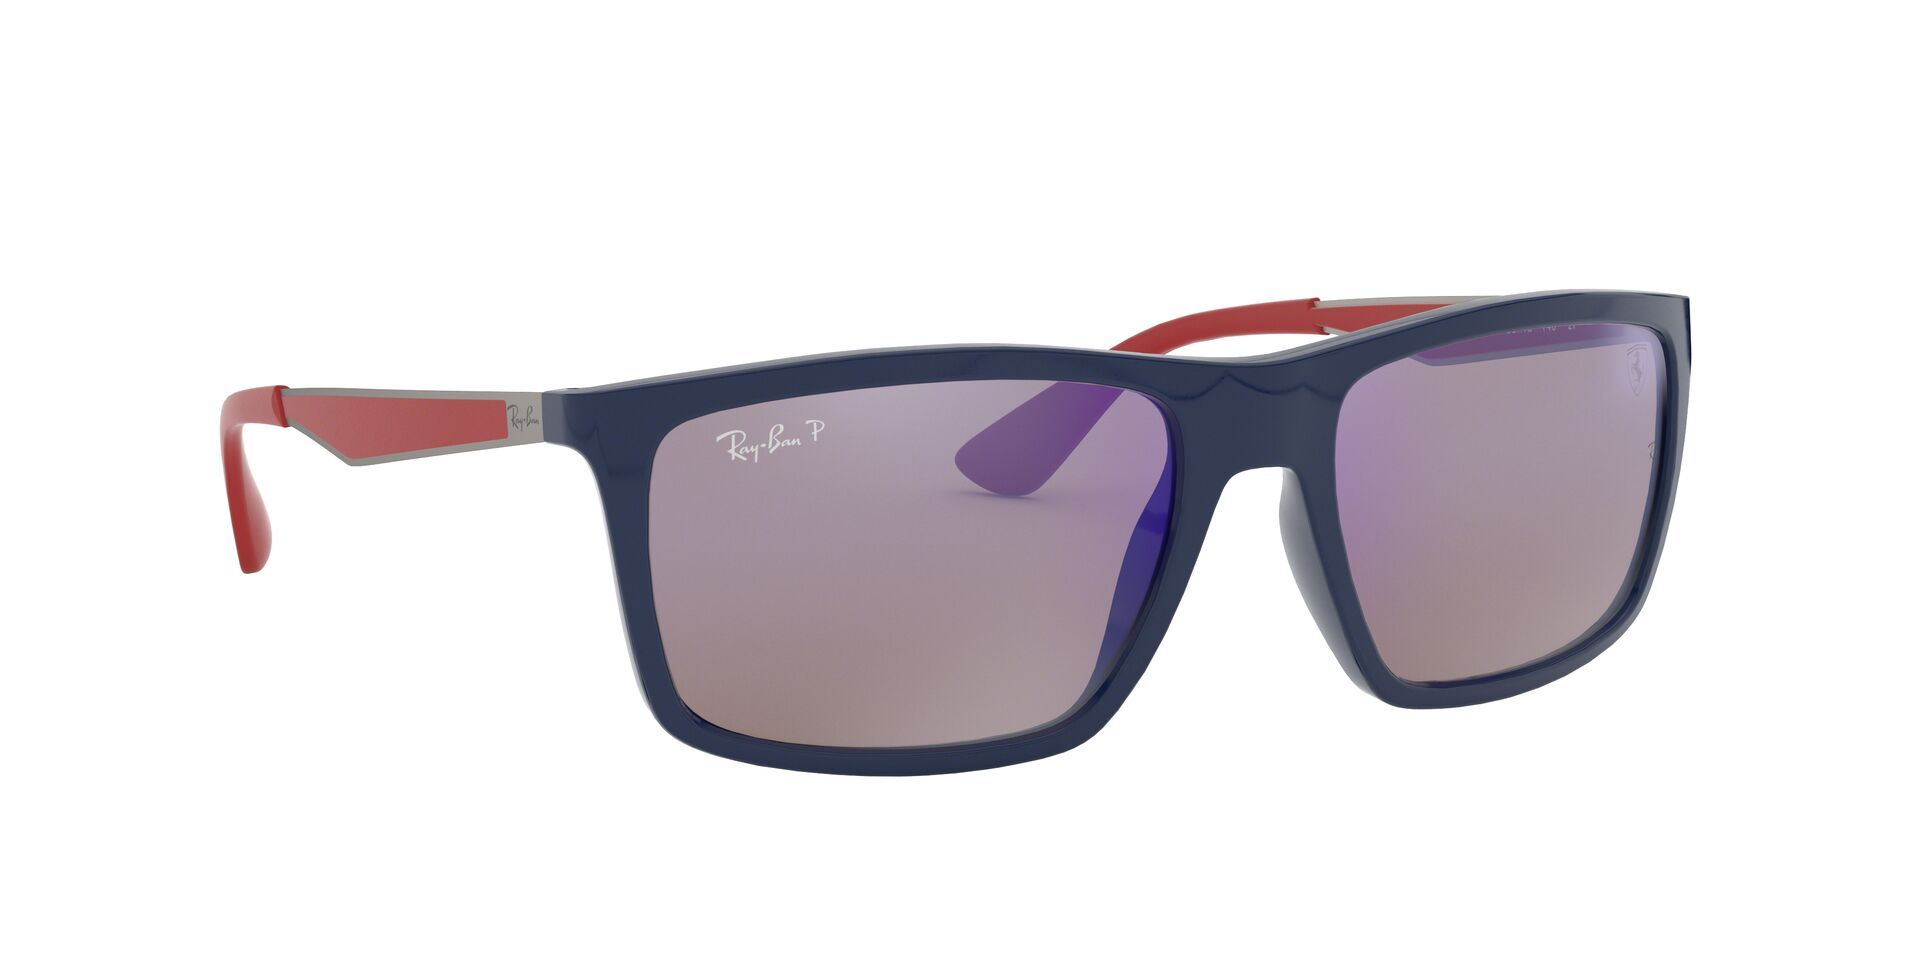 Ray Ban - RB4228M Blue Rectangular Men Sunglasses - 58mm-Sunglasses-Designer Eyes